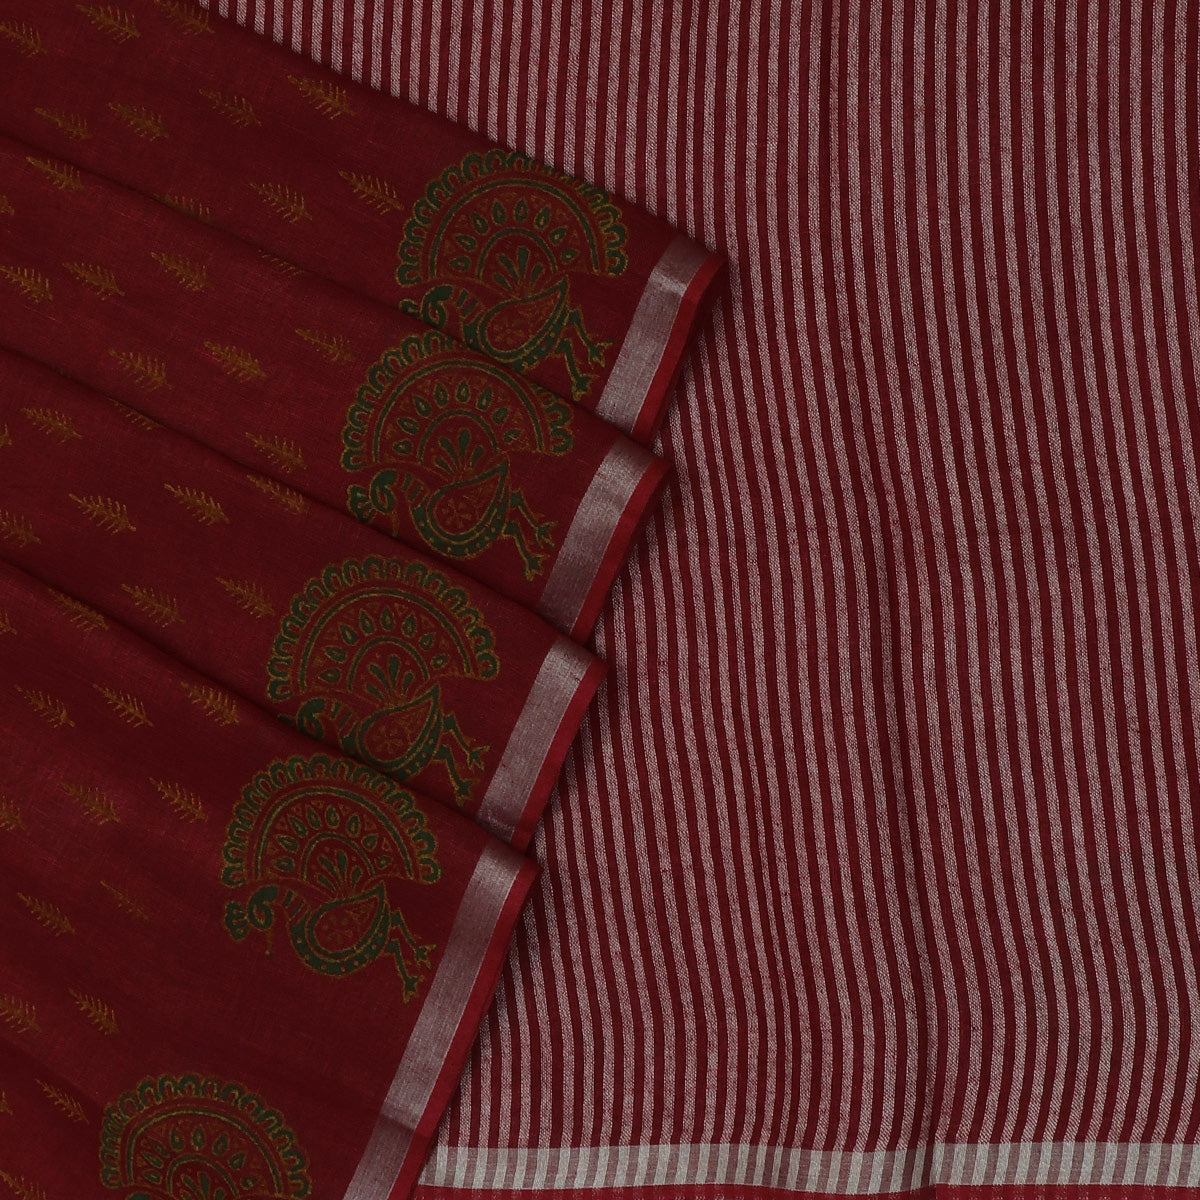 Handblock printed Linen Saree Maroon with Leaf design and Peacock with Silver border